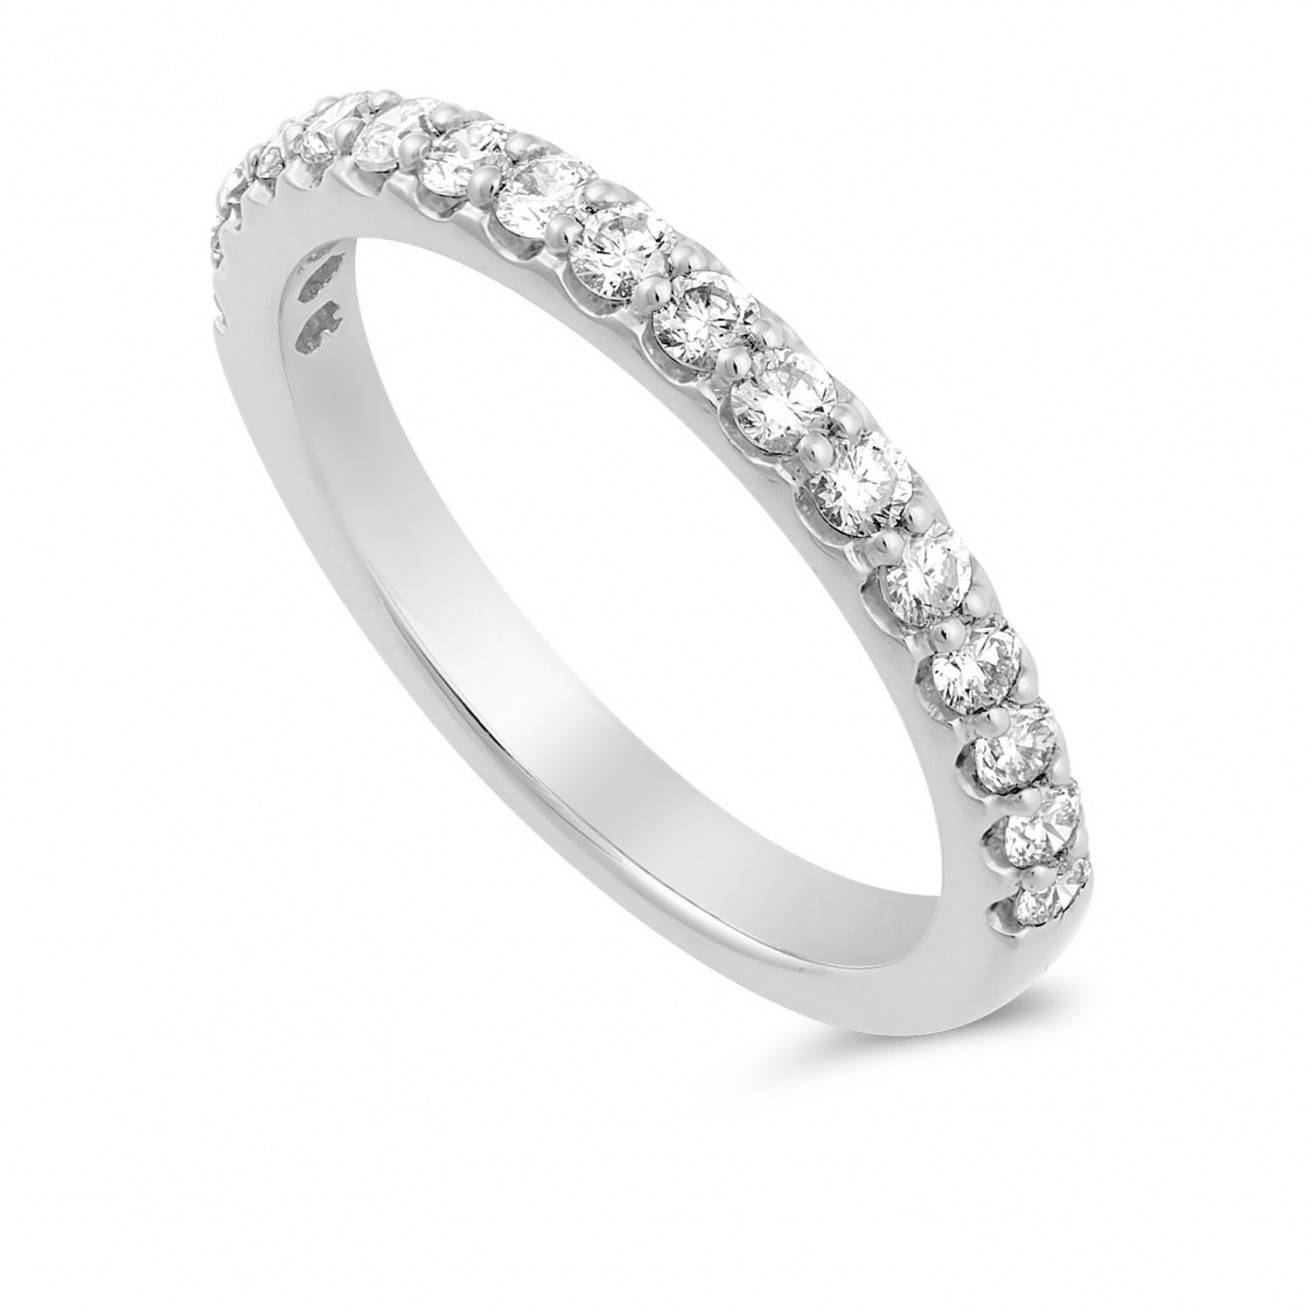 Buy A Diamond Wedding Ring Online – Fraser Hart Within Diamond Band Wedding Rings (View 5 of 15)